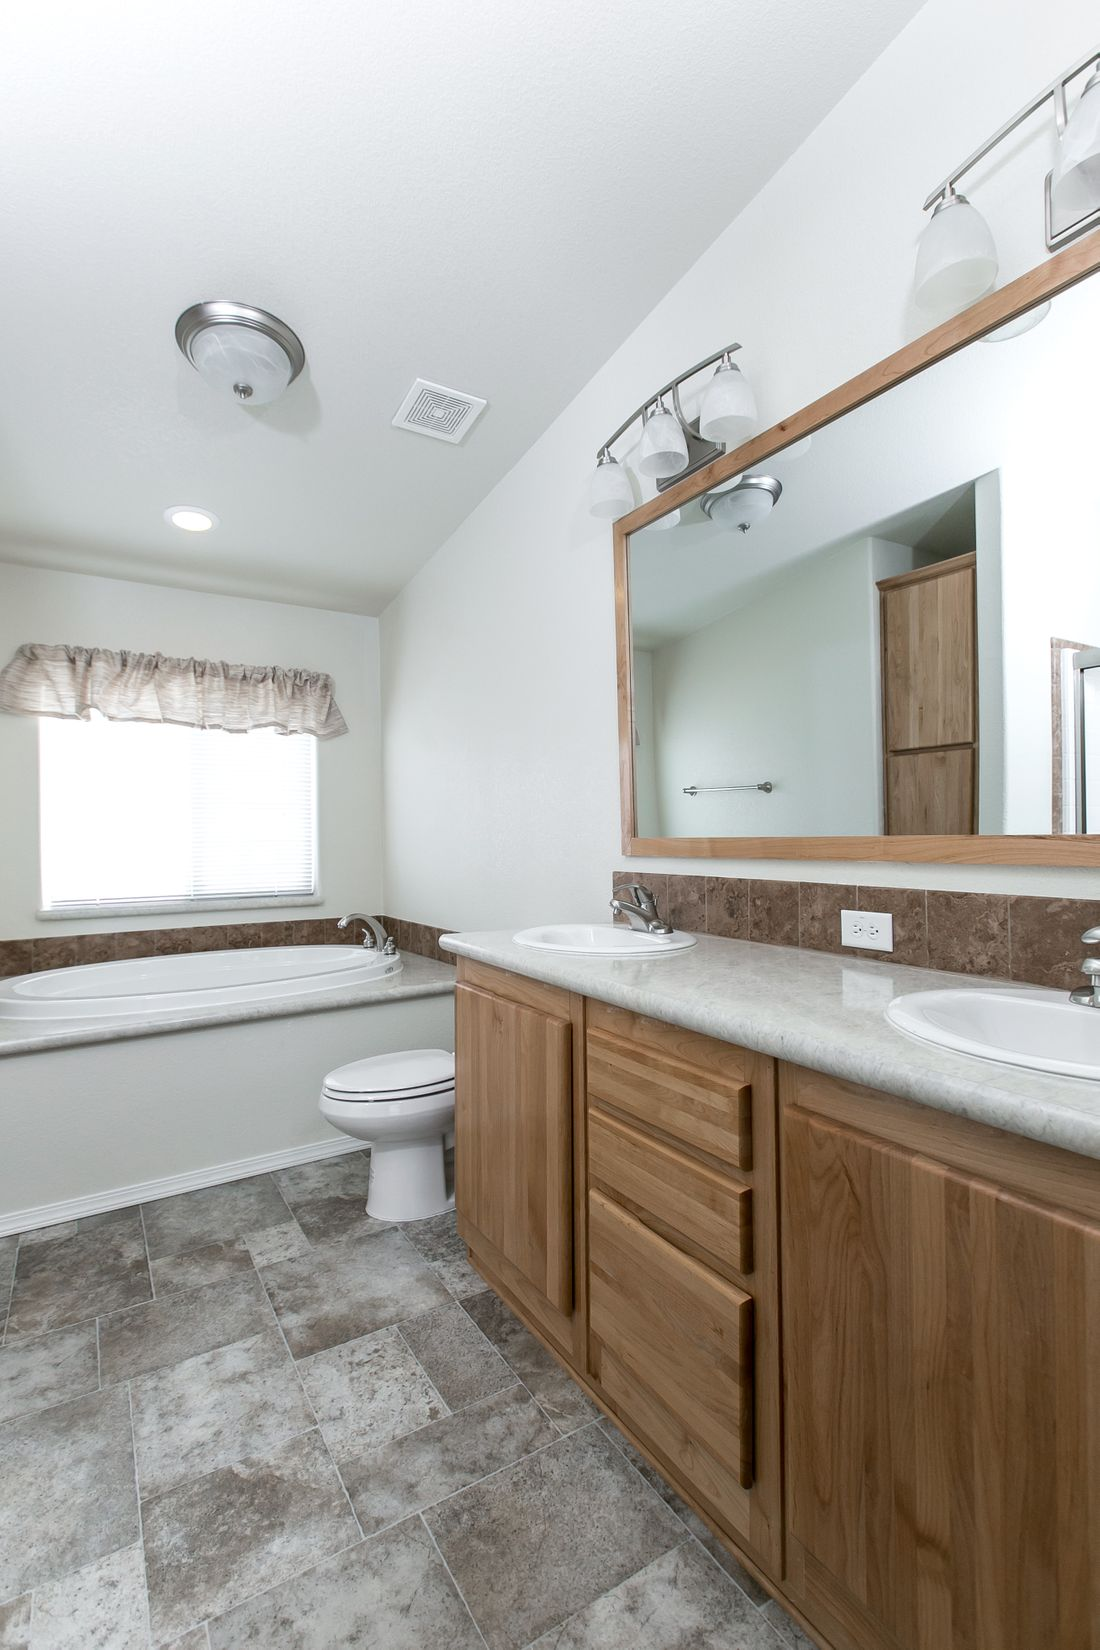 The 9598S BAKER Master Bathroom. This Manufactured Mobile Home features 3 bedrooms and 2 baths.